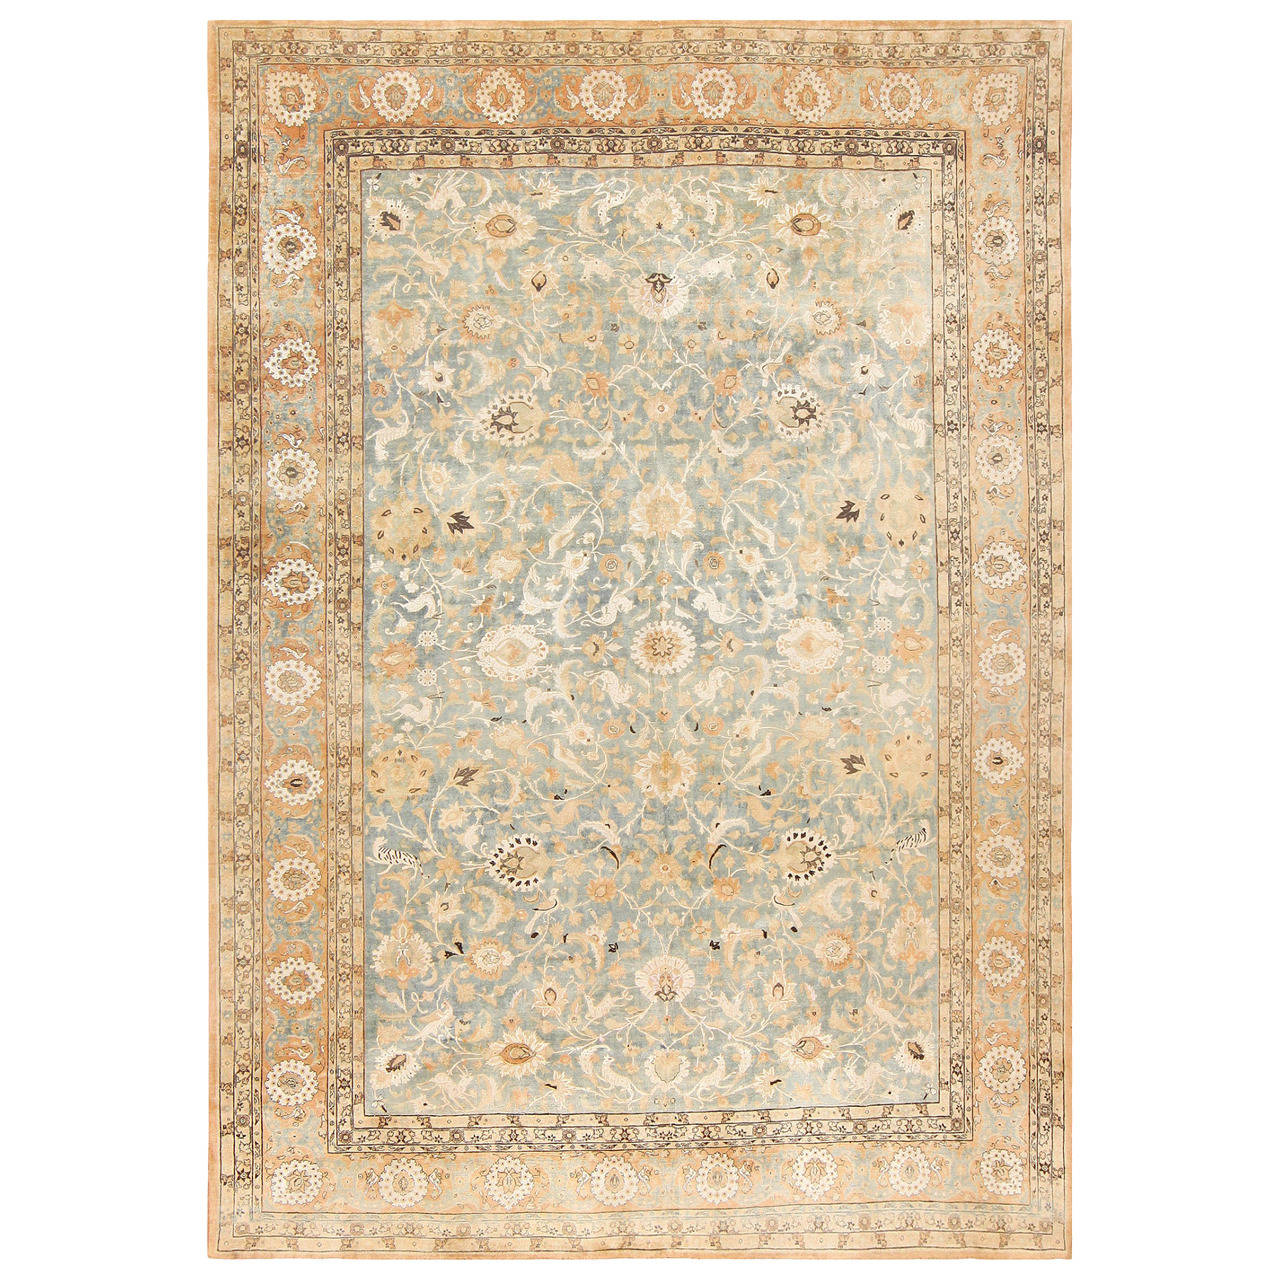 Persian Rugs For Sale: Fine SIlk And Wool Antique Persian Tehran Rug For Sale At